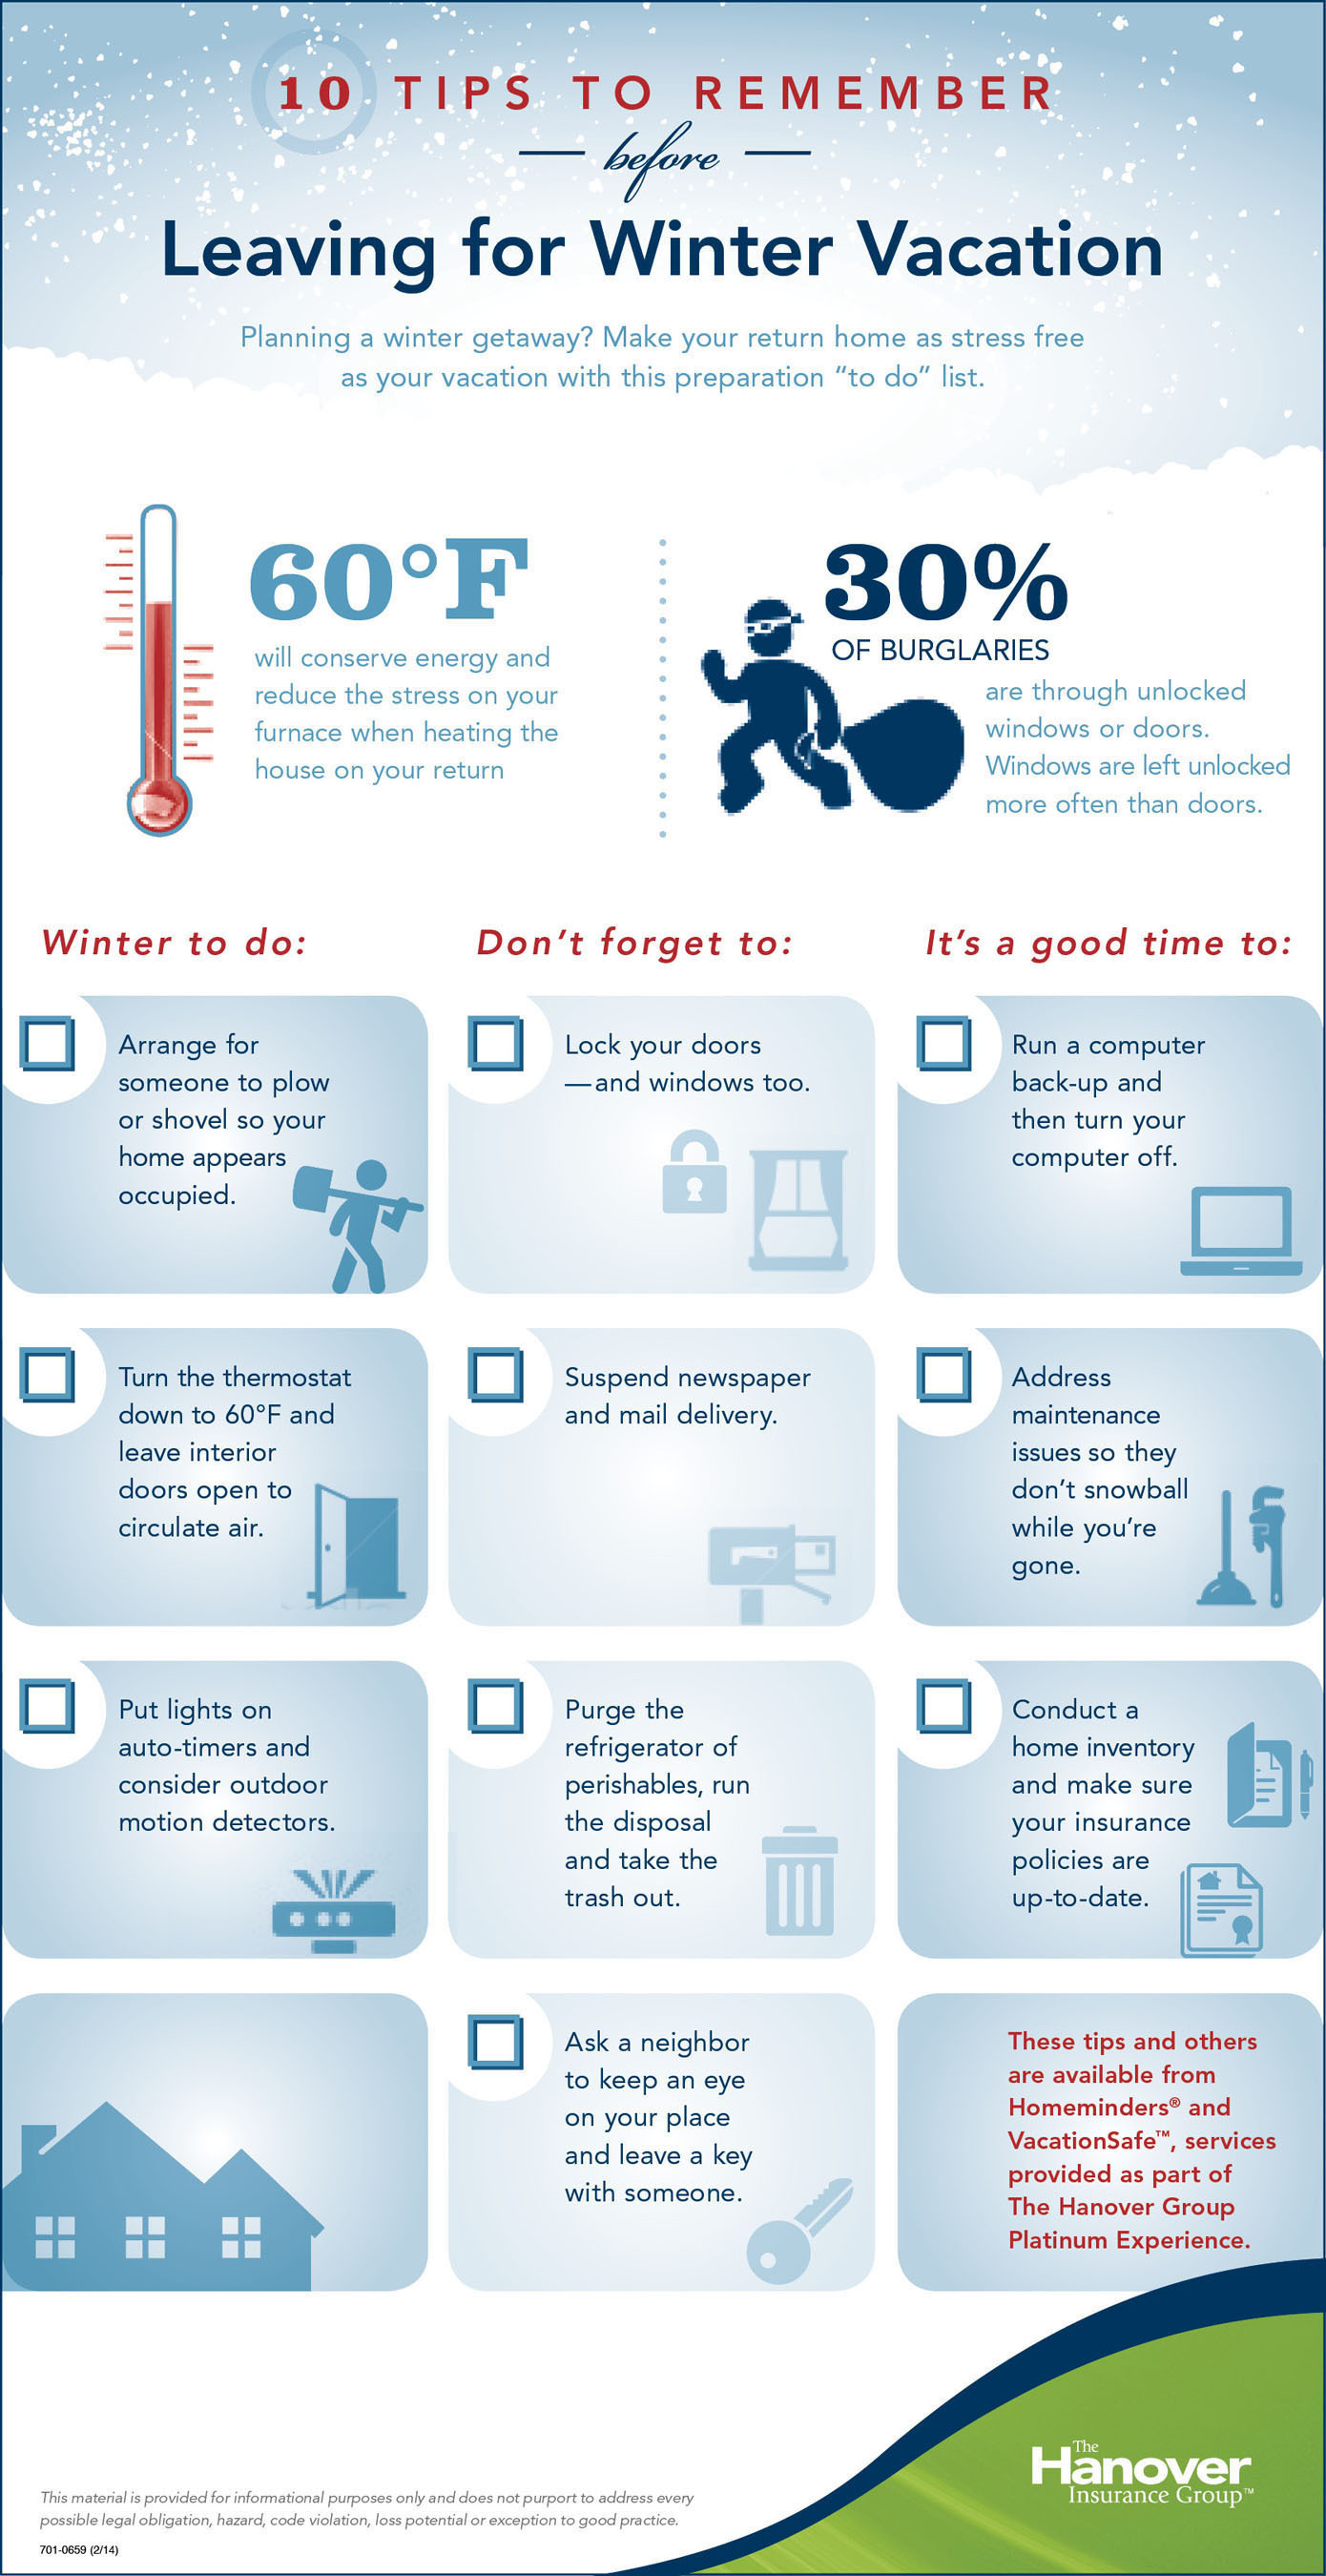 10 Winter Vacation Tips to Get Your Home Ready Before You Get Away.  (PRNewsFoto/The Hanover Insurance Group, Inc.)